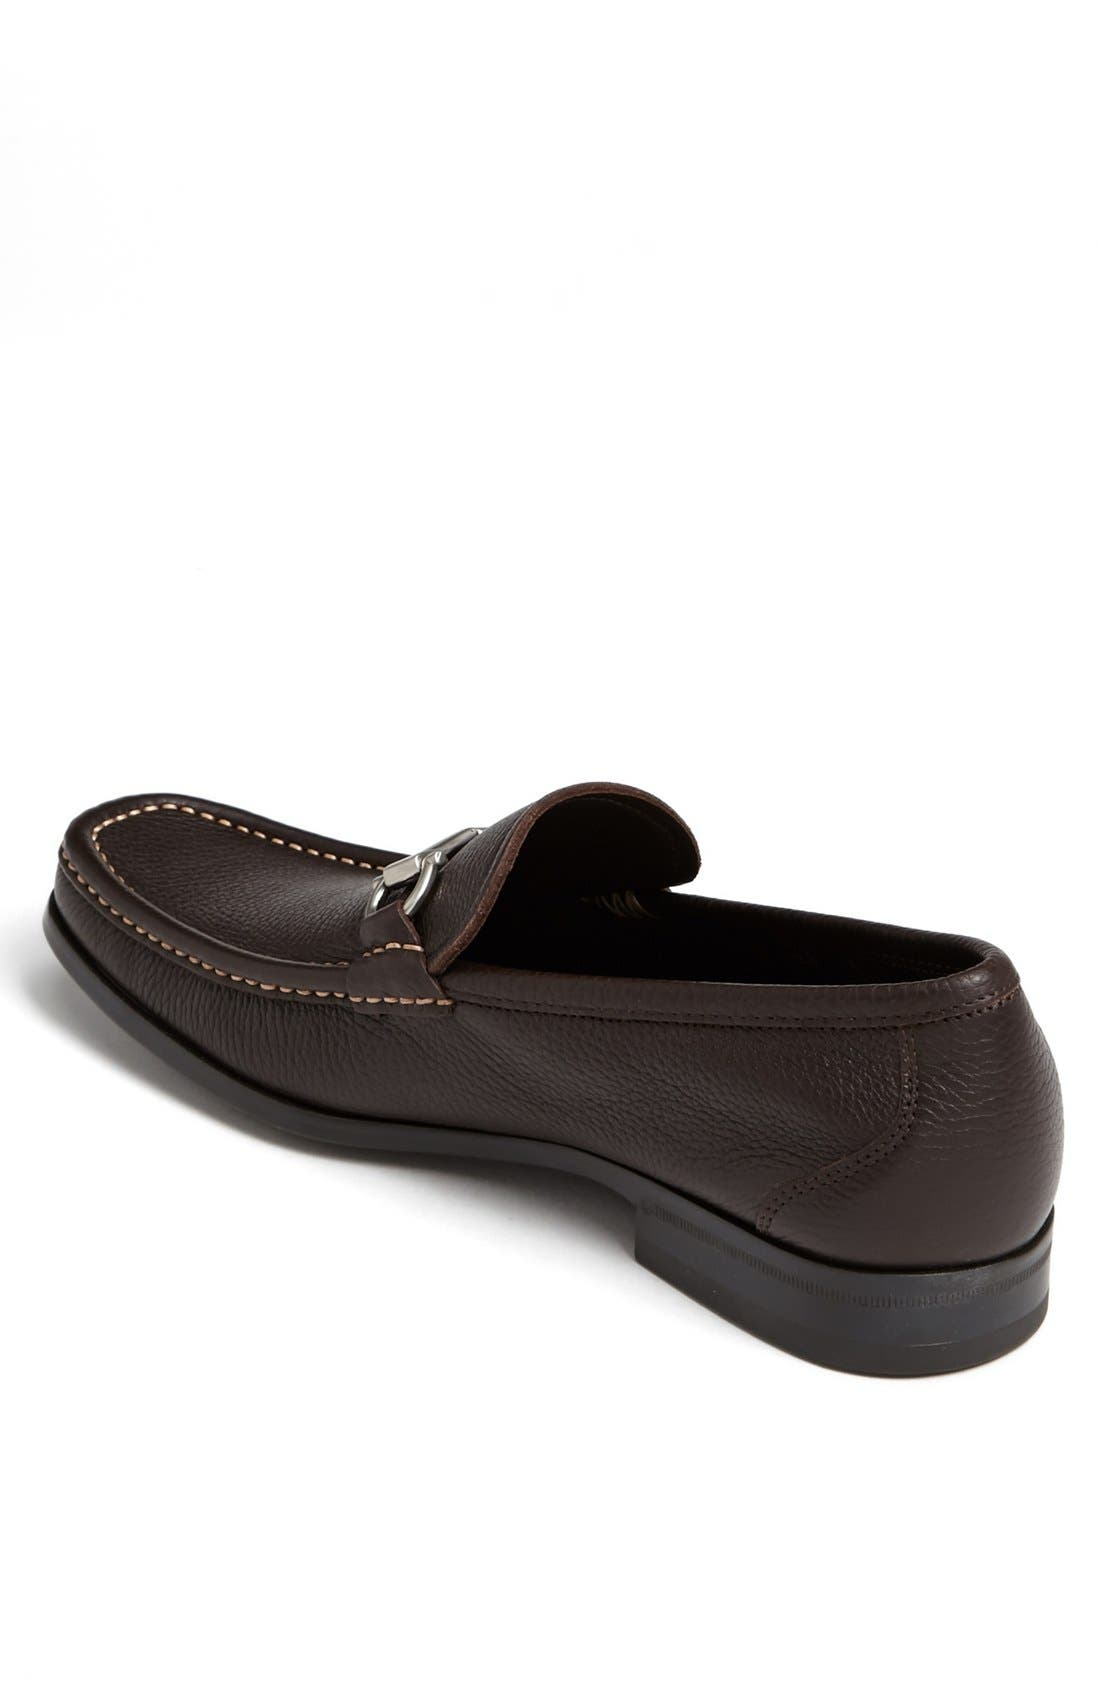 Alternate Image 2  - Salvatore Ferragamo 'Magnifico' Loafer